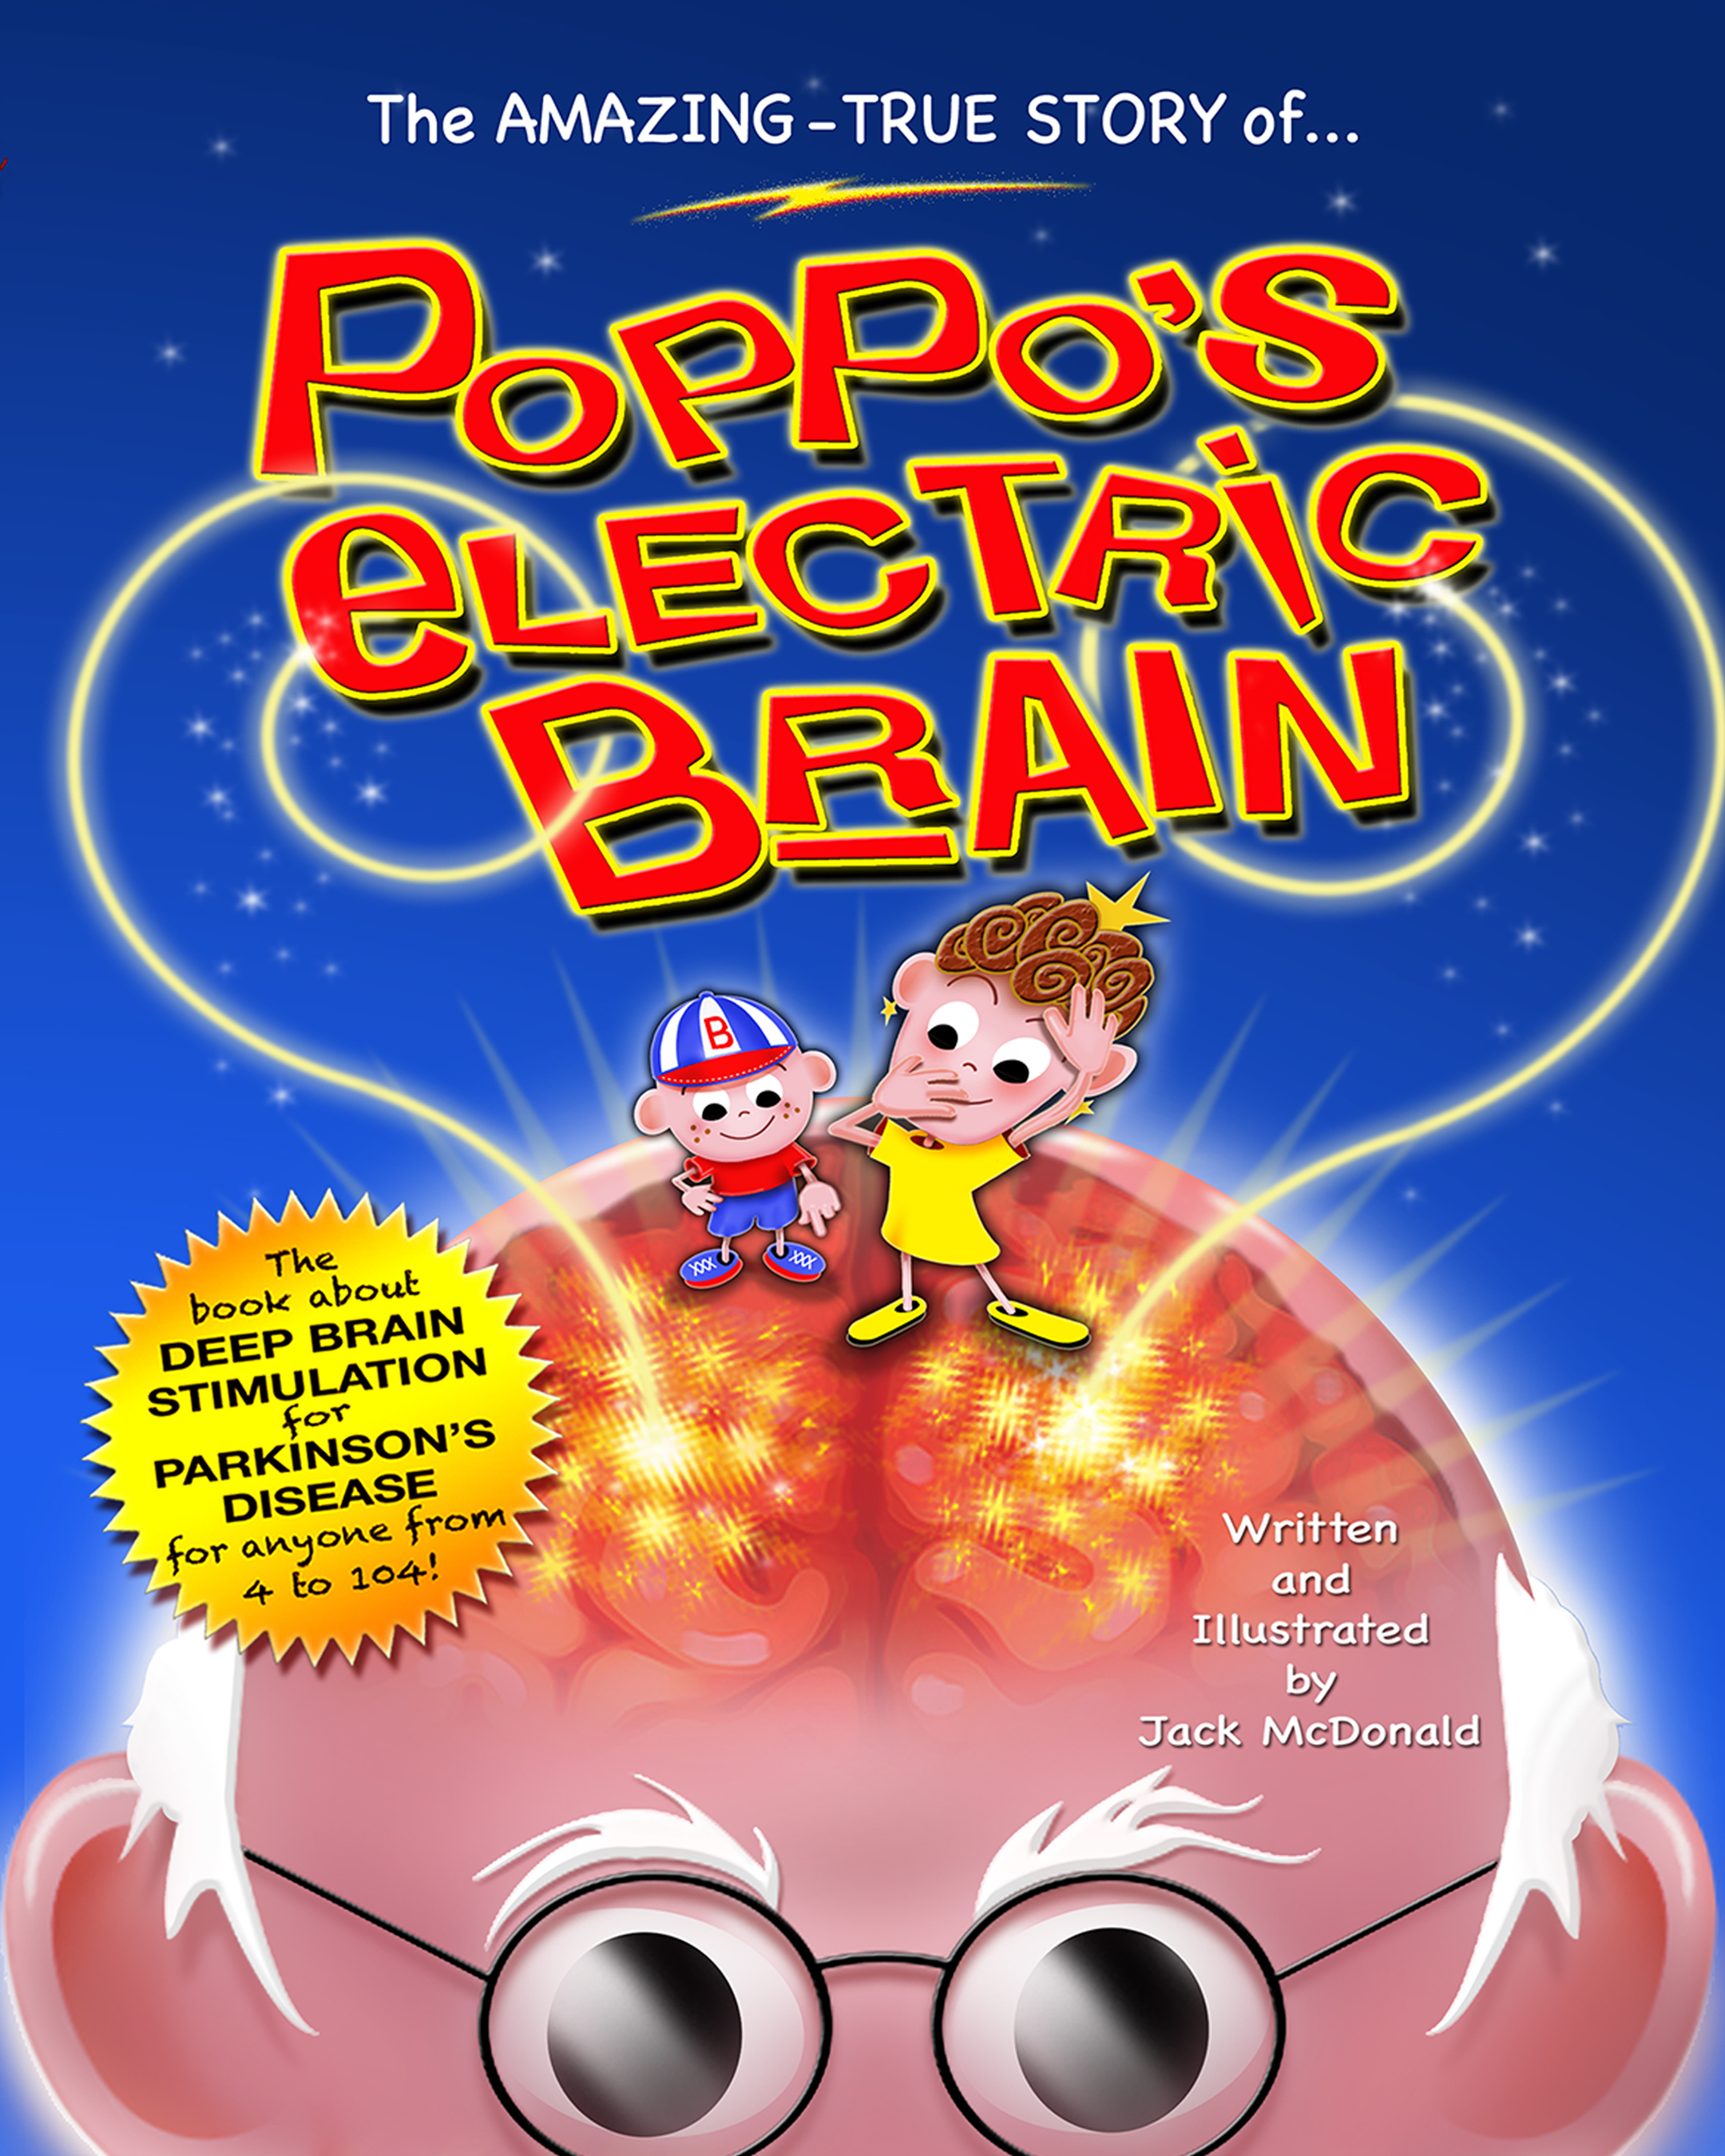 New Children's Book, Poppo's Electric Brain, is Released